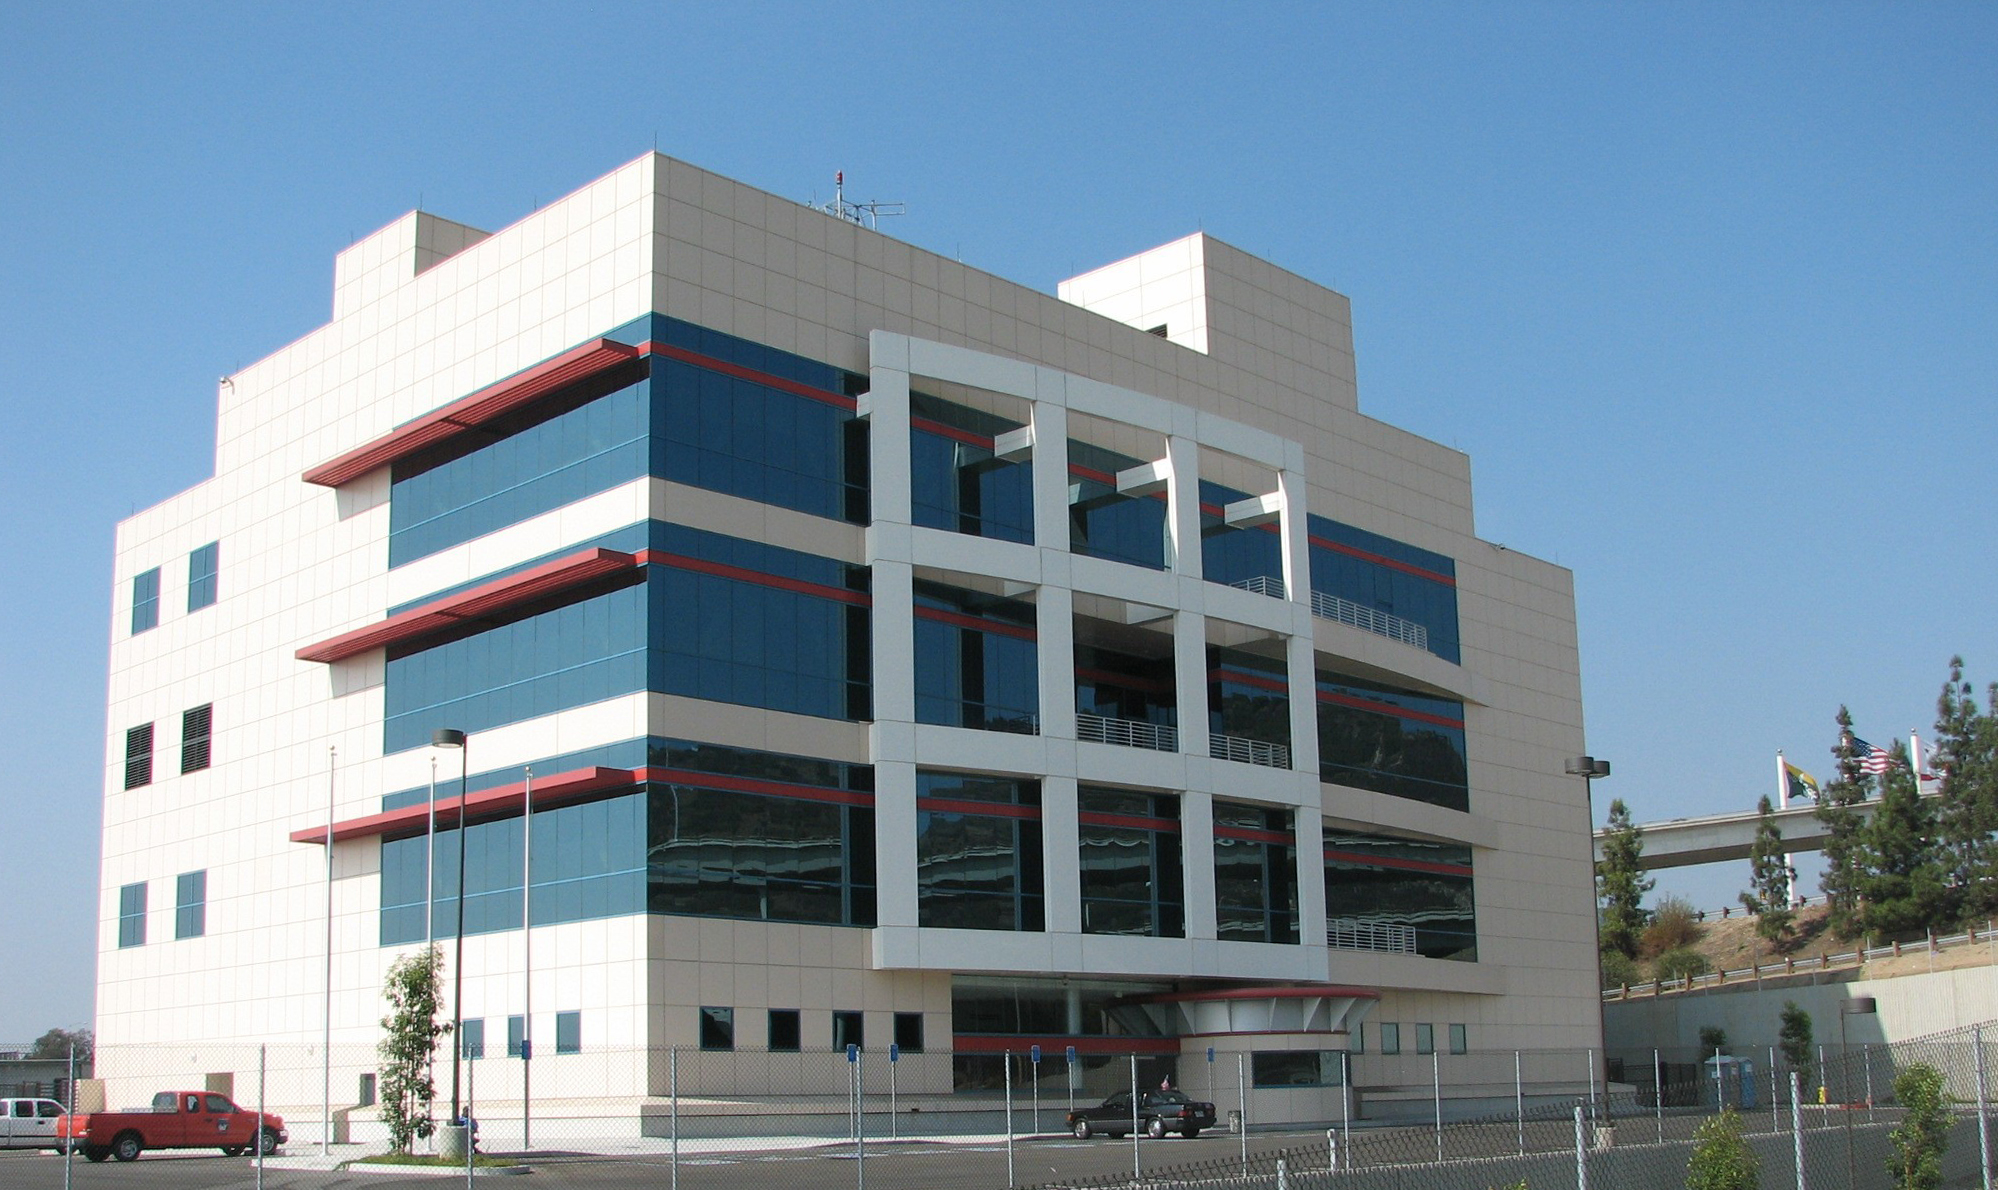 Los Angeles Regional Transportation Management Center